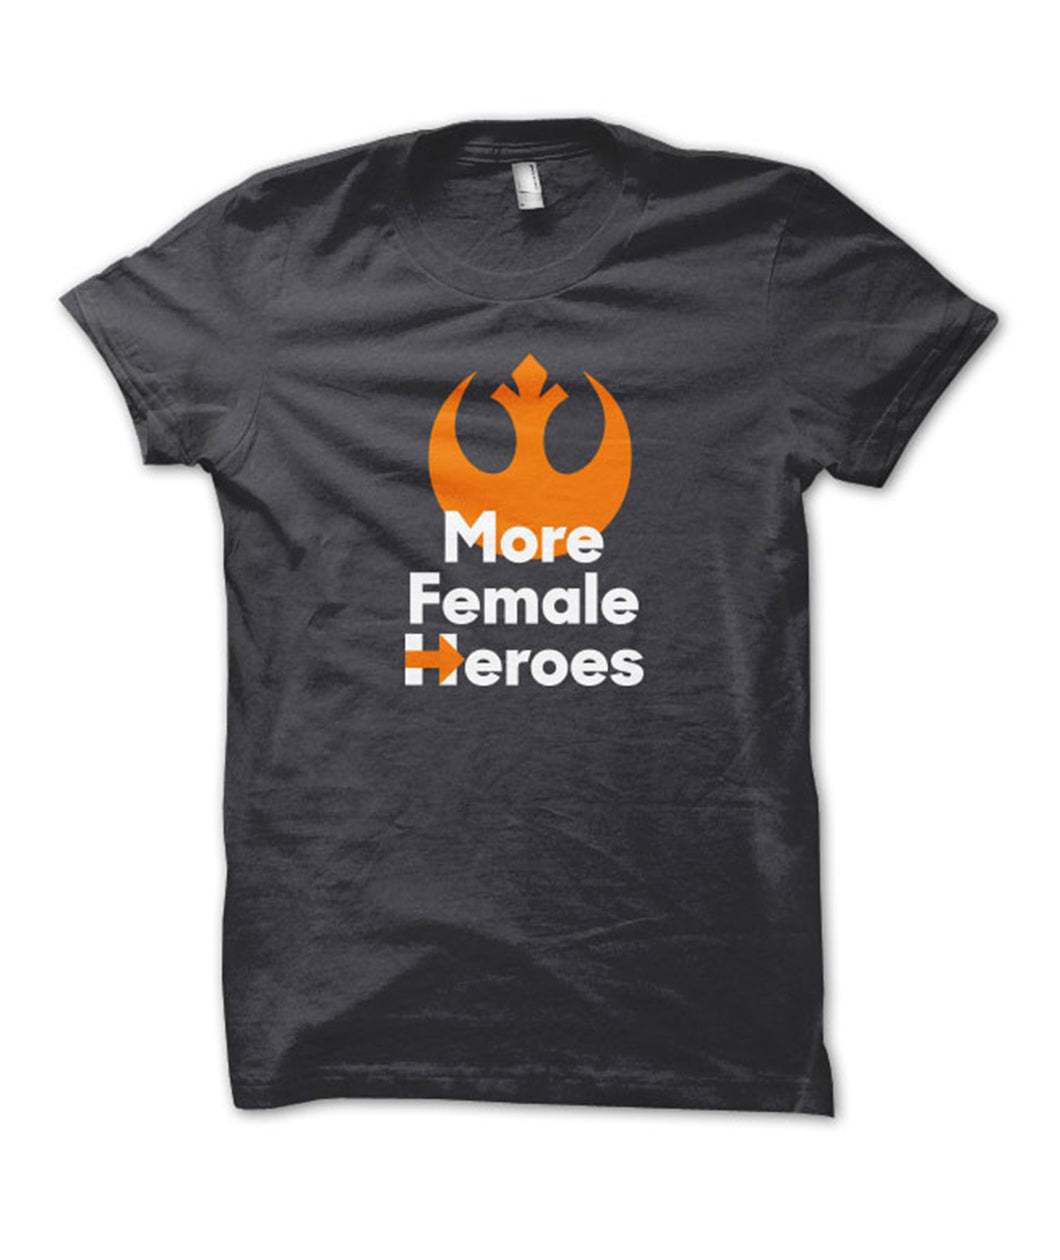 More Female Heroes Shirt